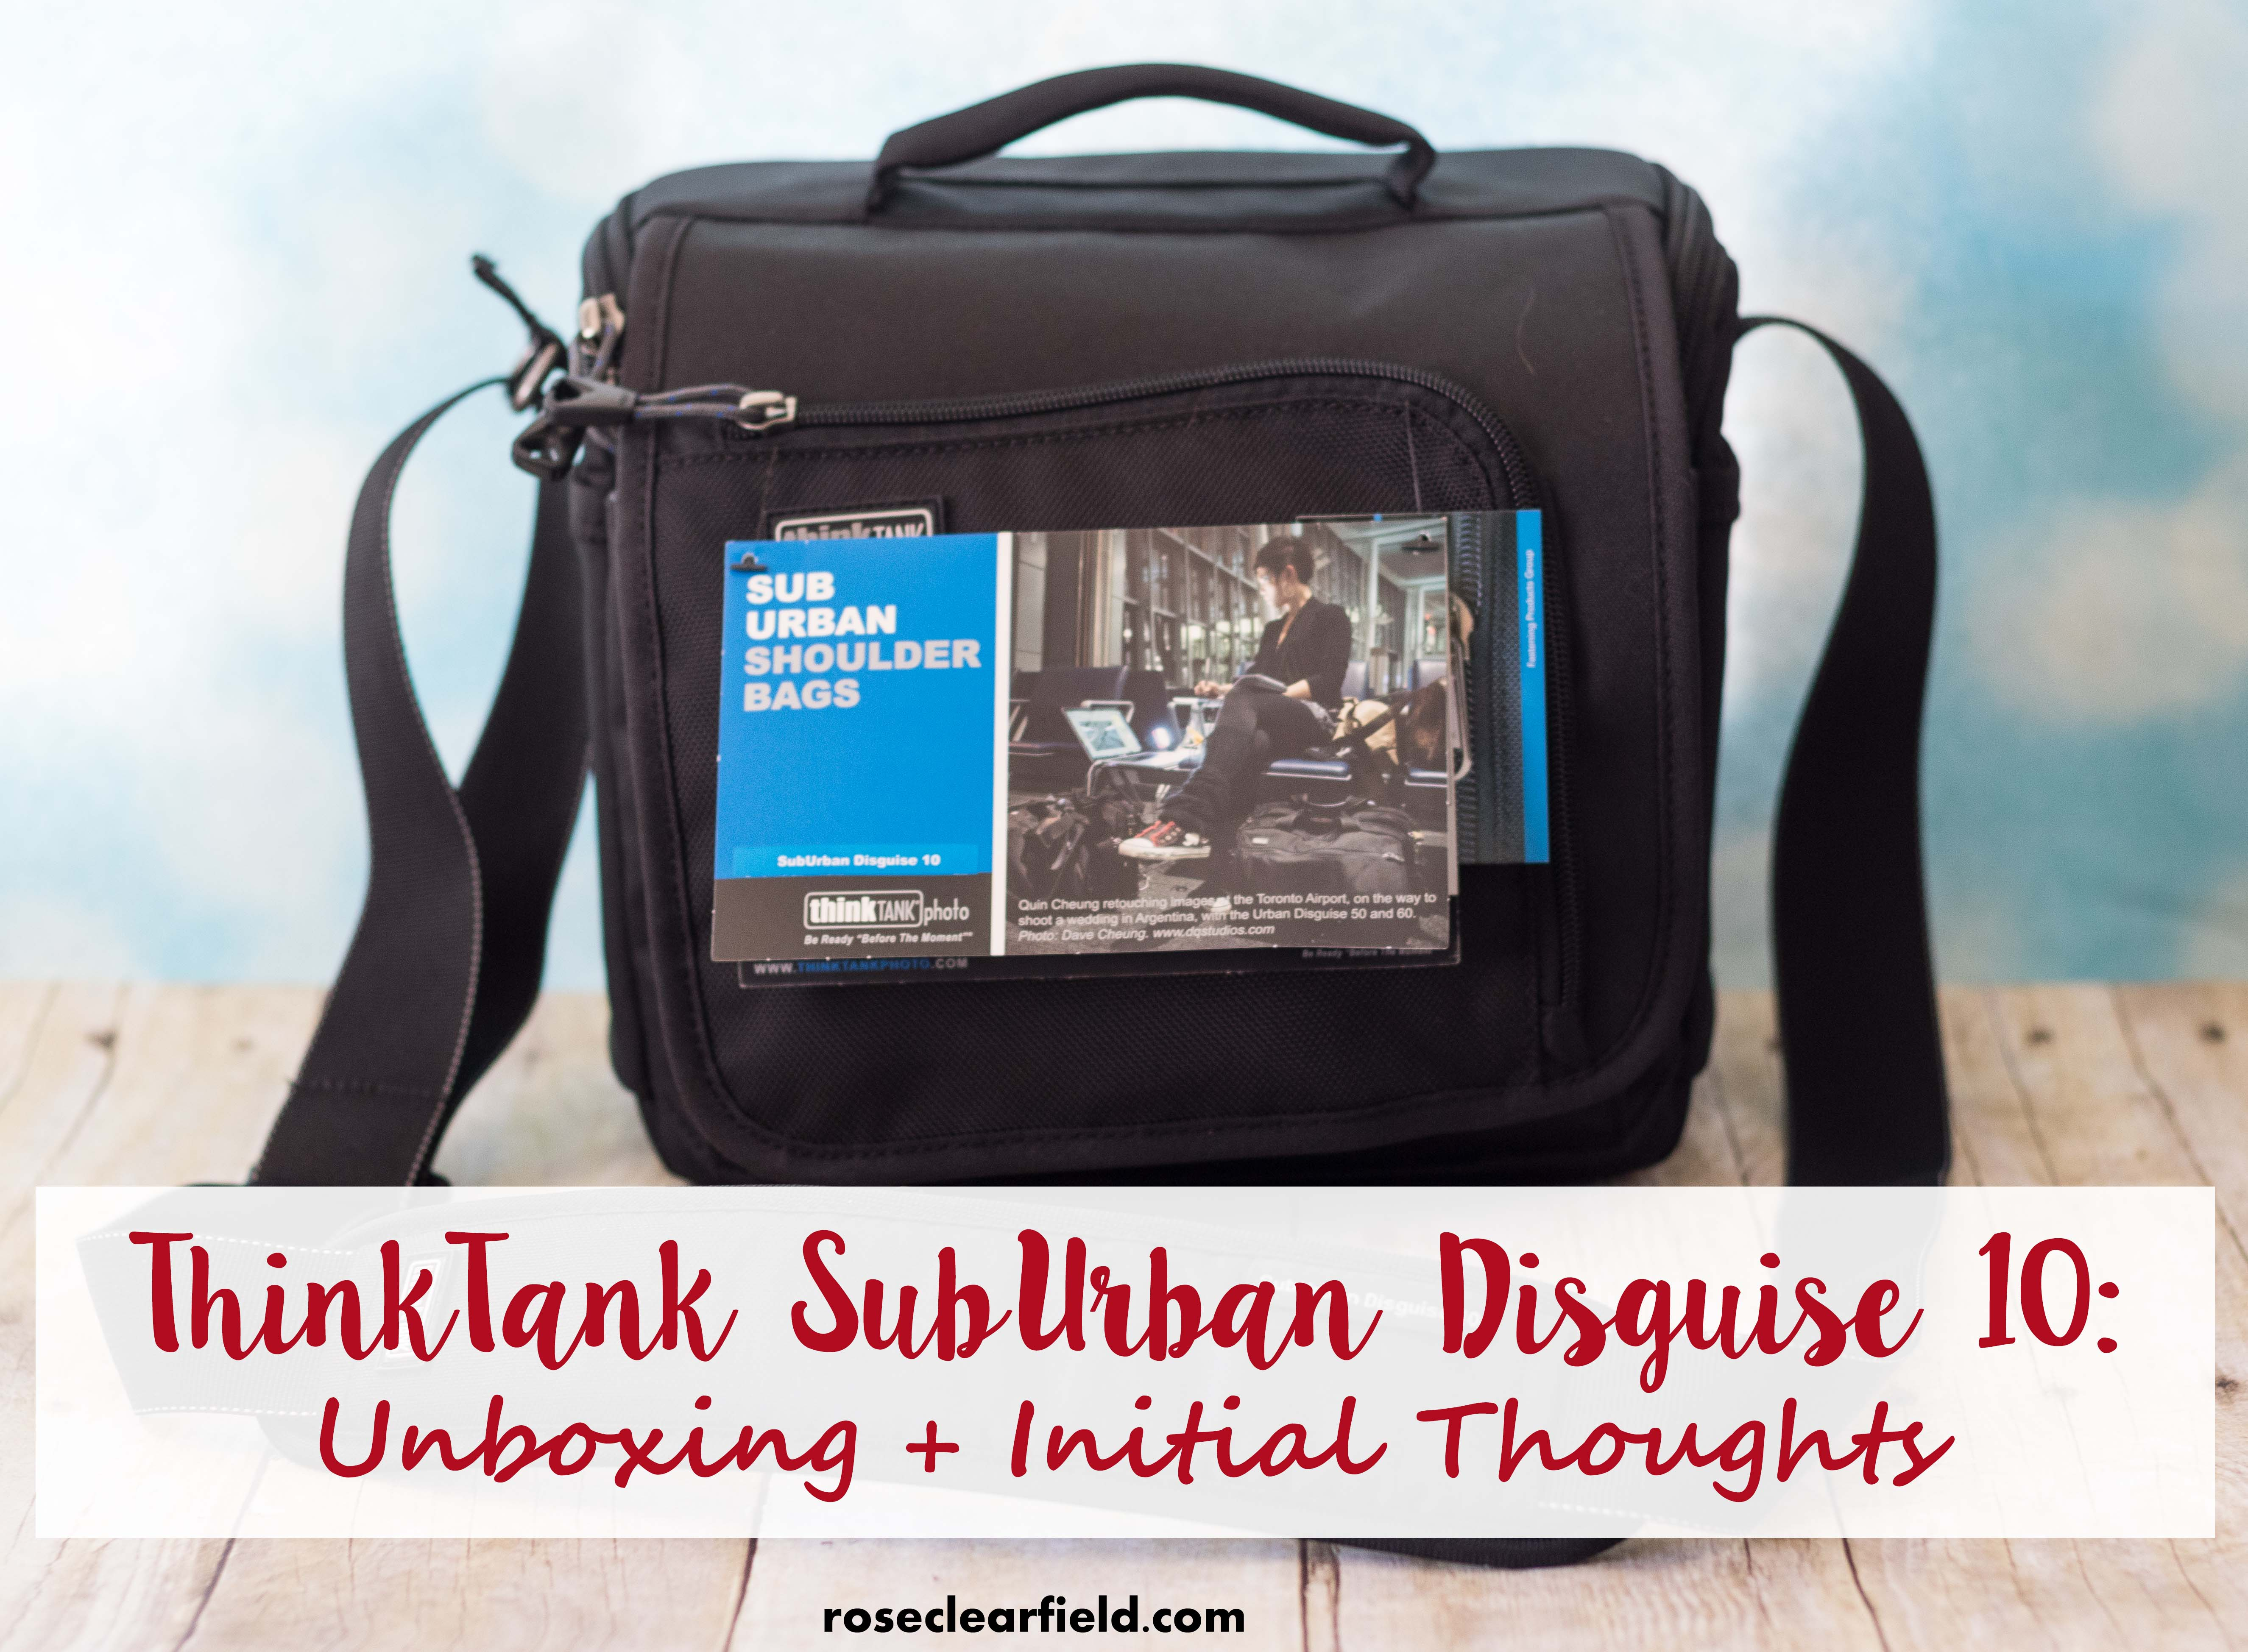 ThinkTank SubUrban Disguise 10 Unboxing + Initial Thoughts | https://www.roseclearfield.com